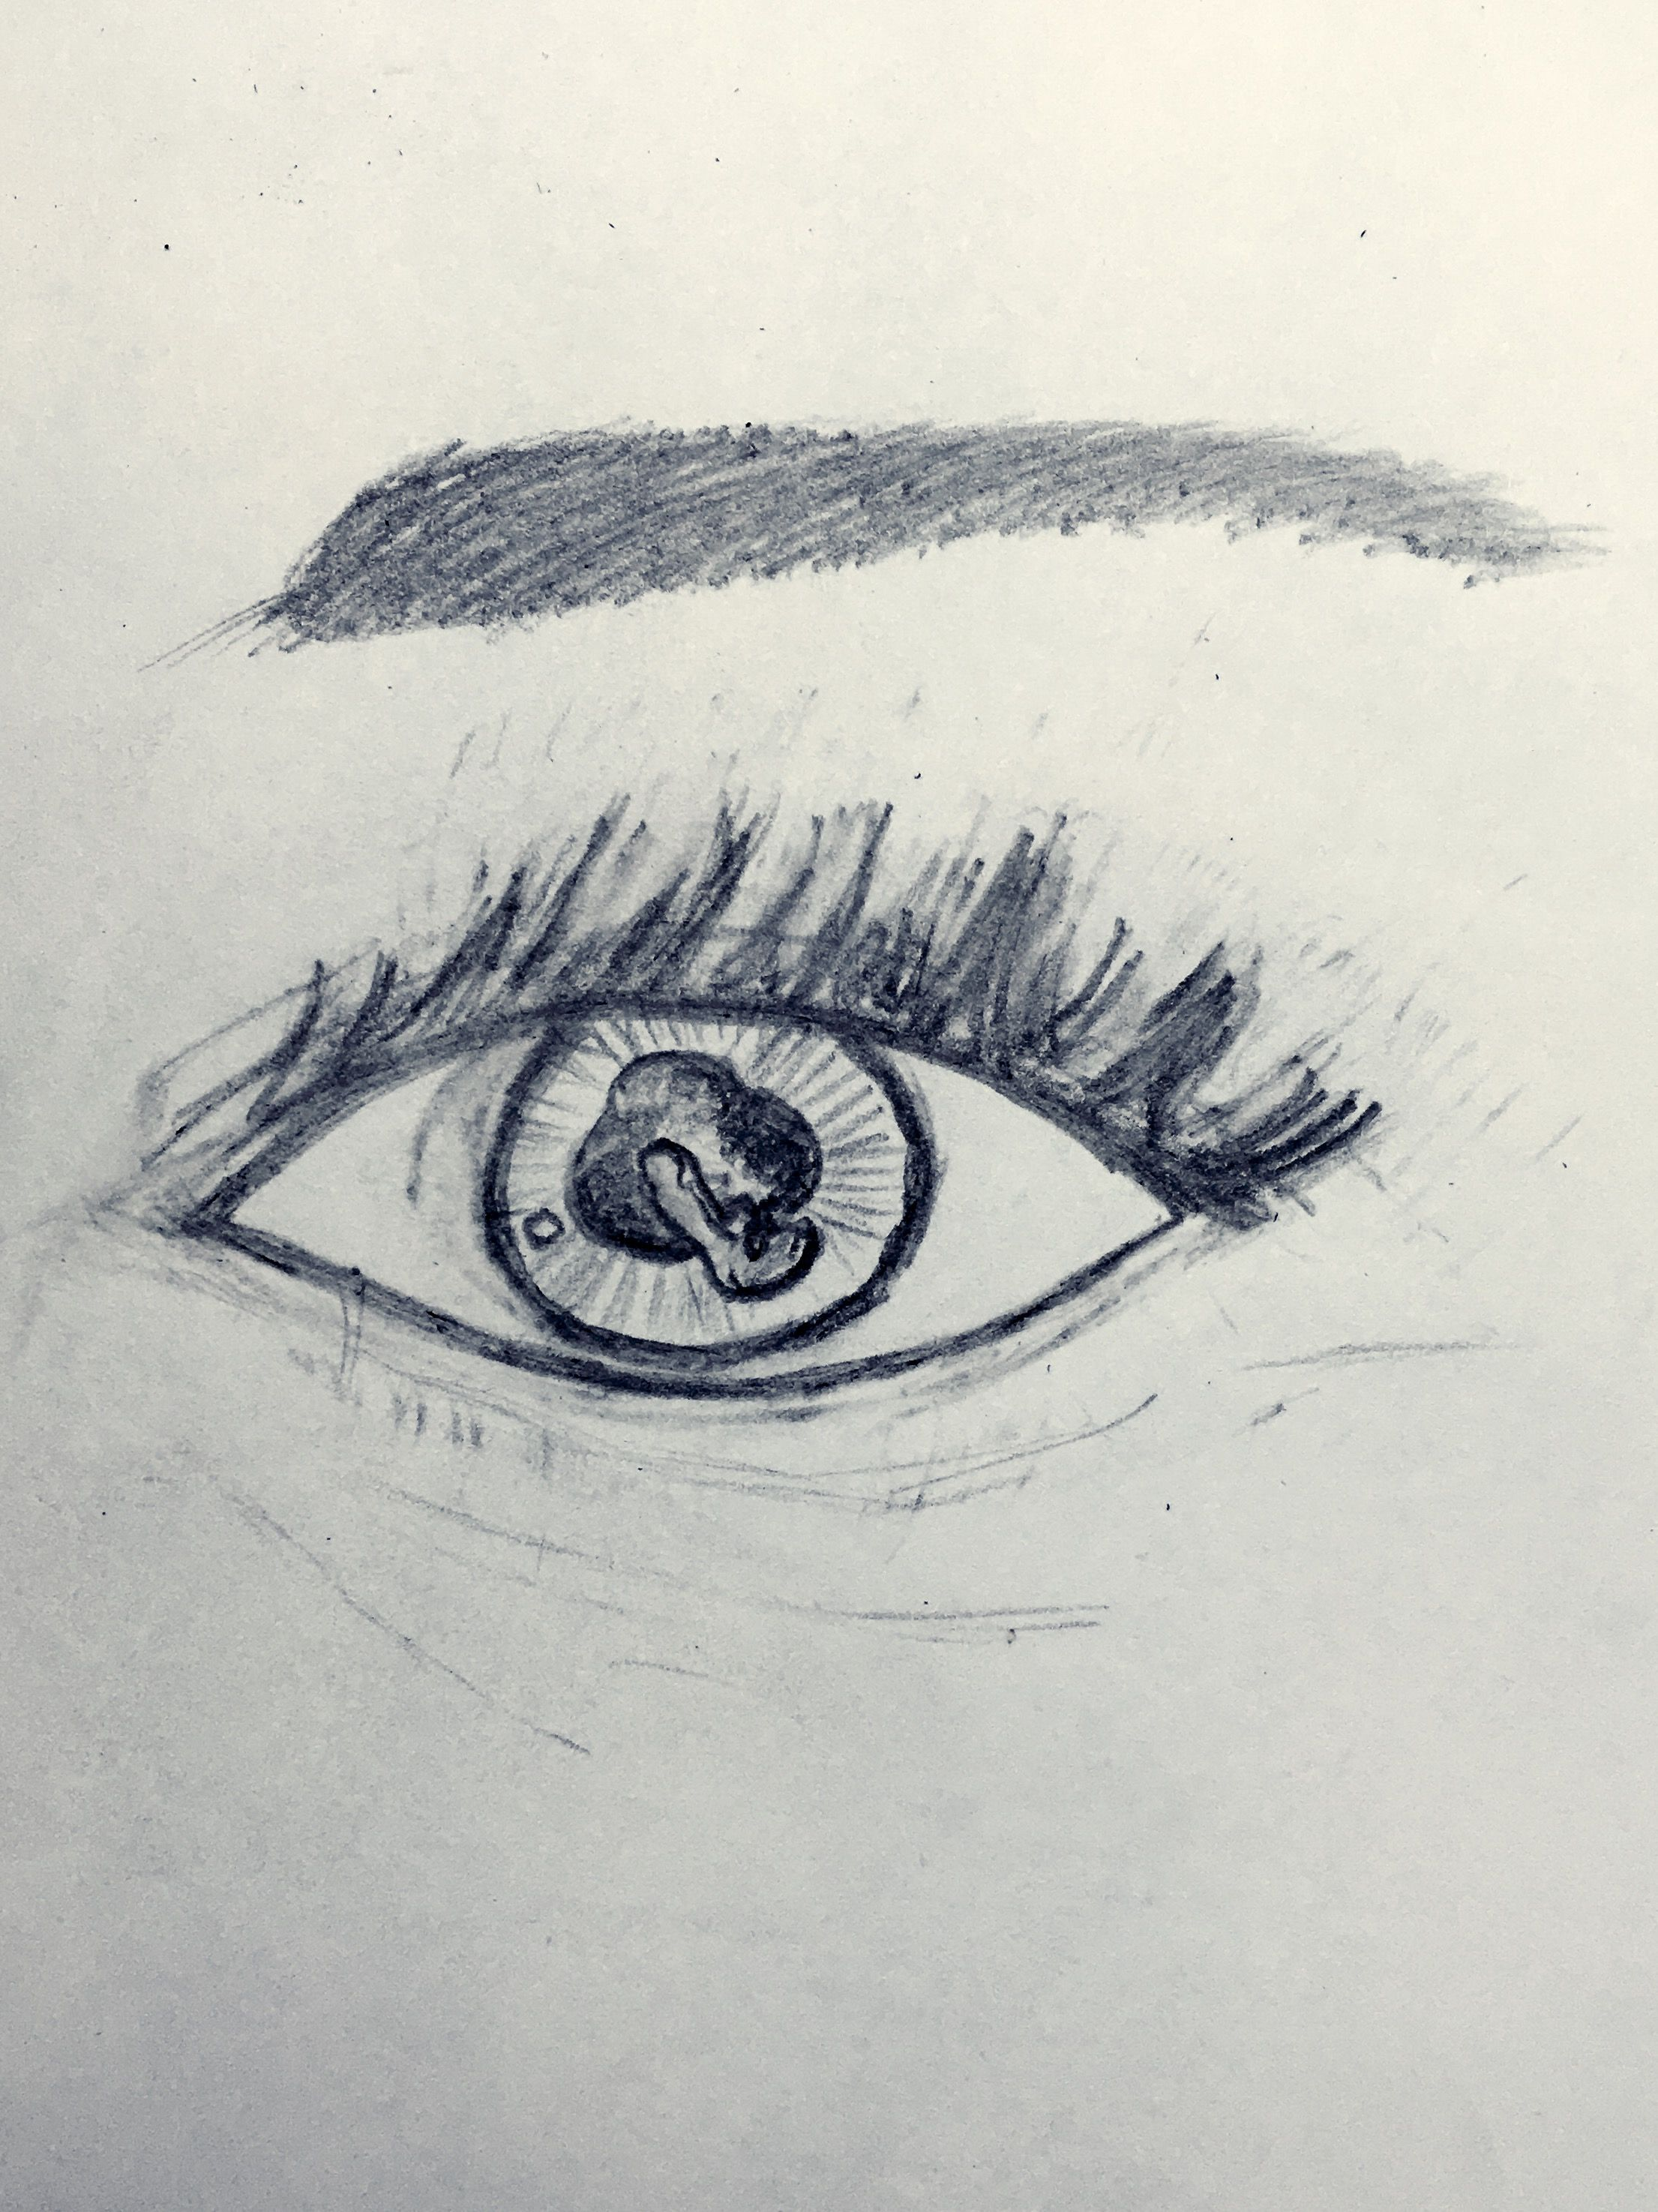 A fun morning practicing drawing eyes, only had an eraser and two pencils for this. The truth is in the eye of the beholder.